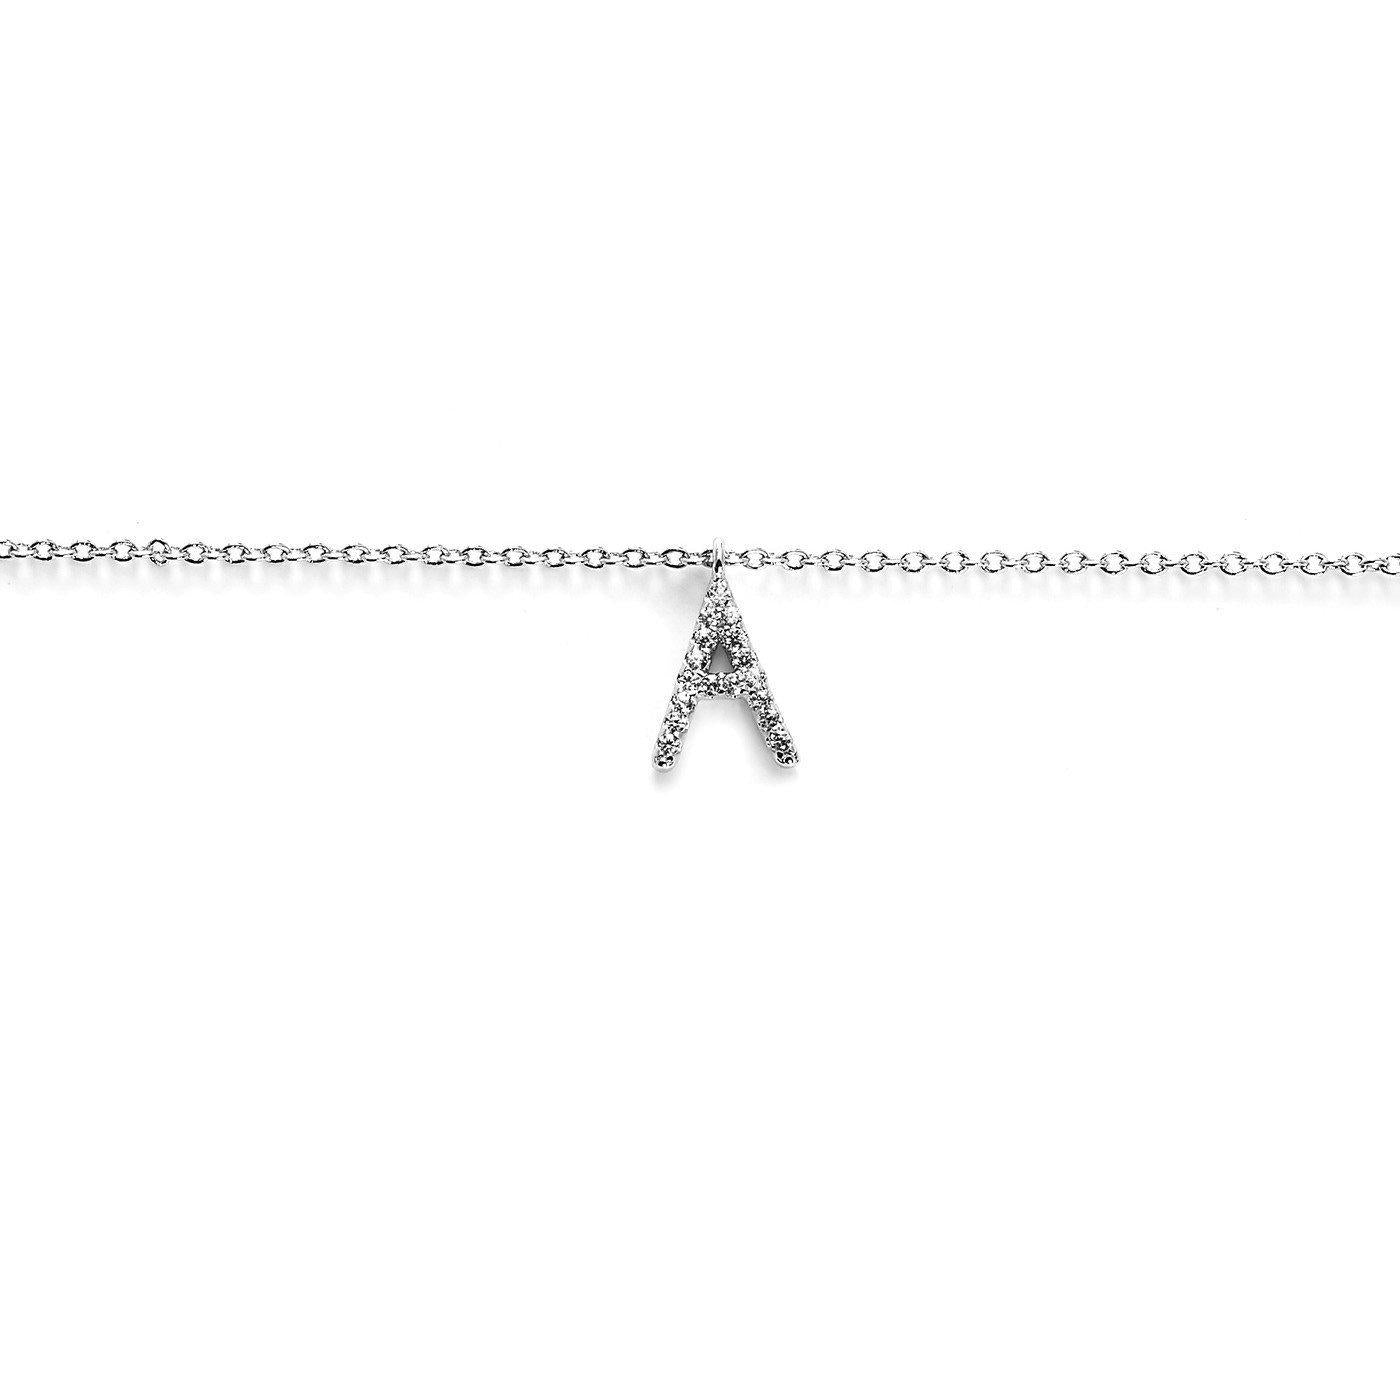 Your Initial A Necklace-Blinglane